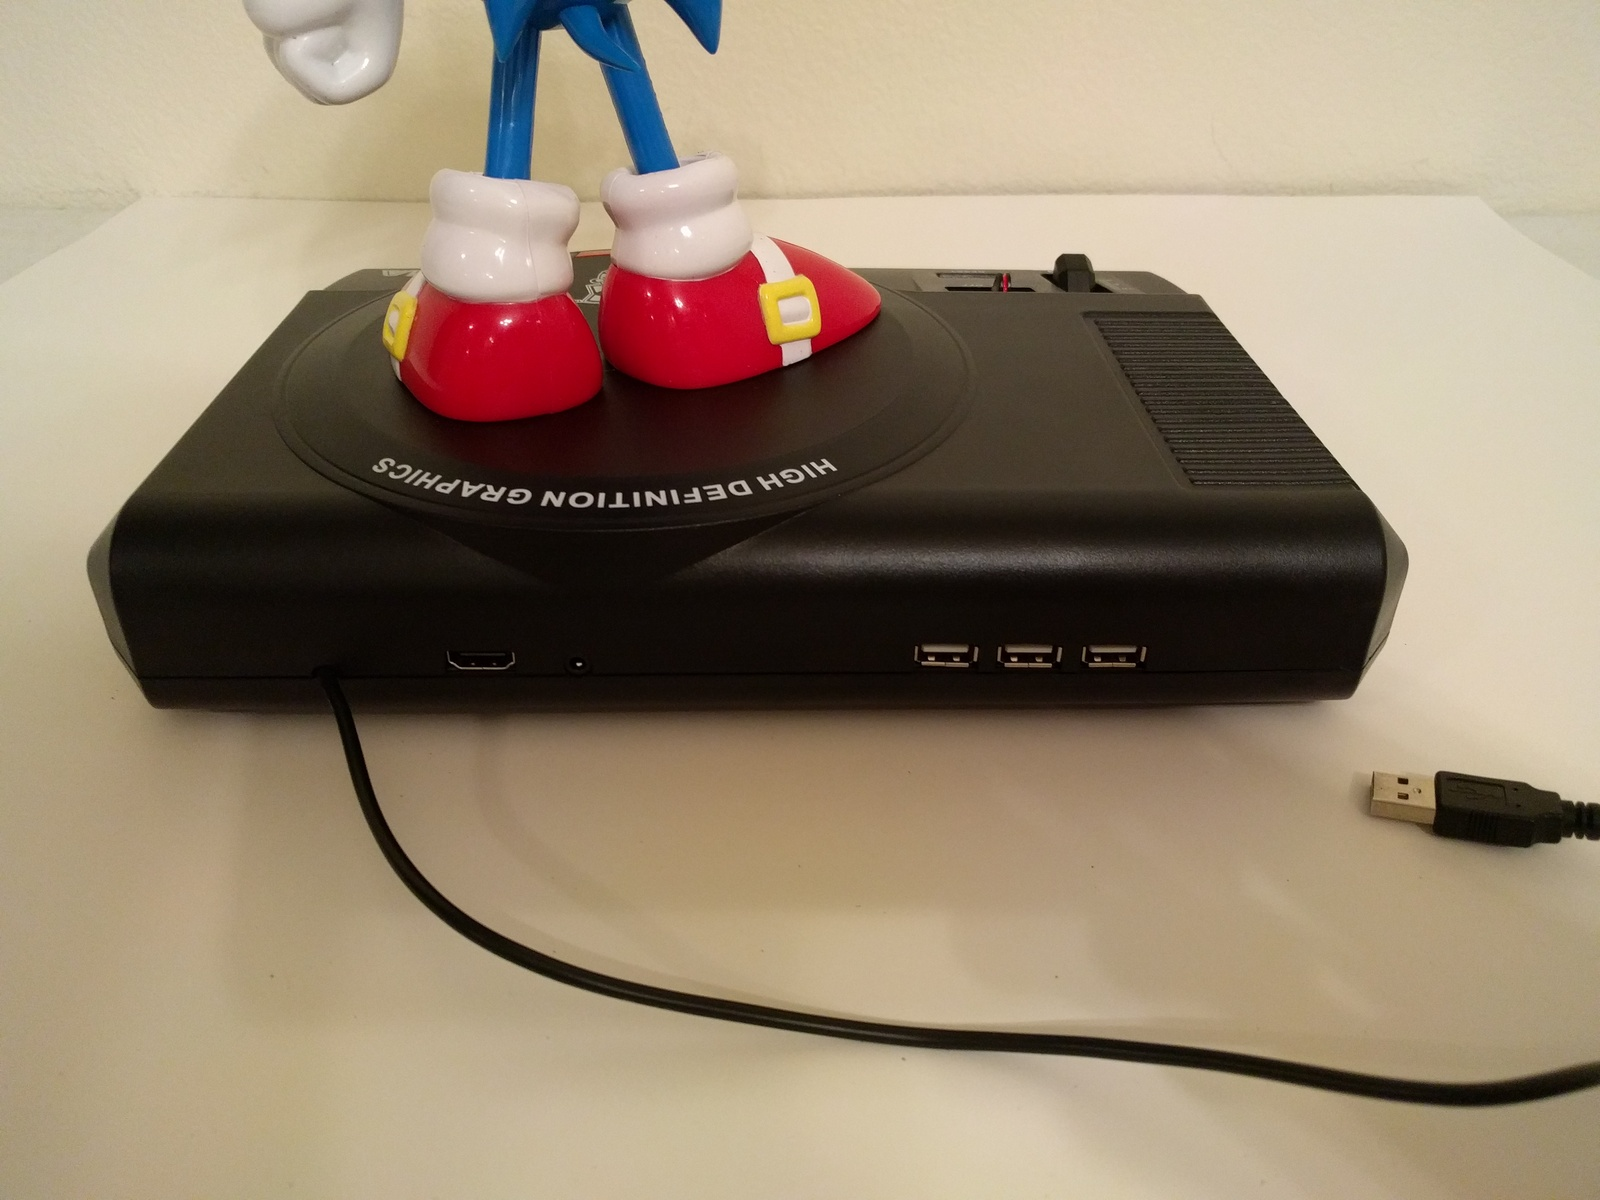 Sonic Mania Modding Service - Play games on your Sonic Mania Statue